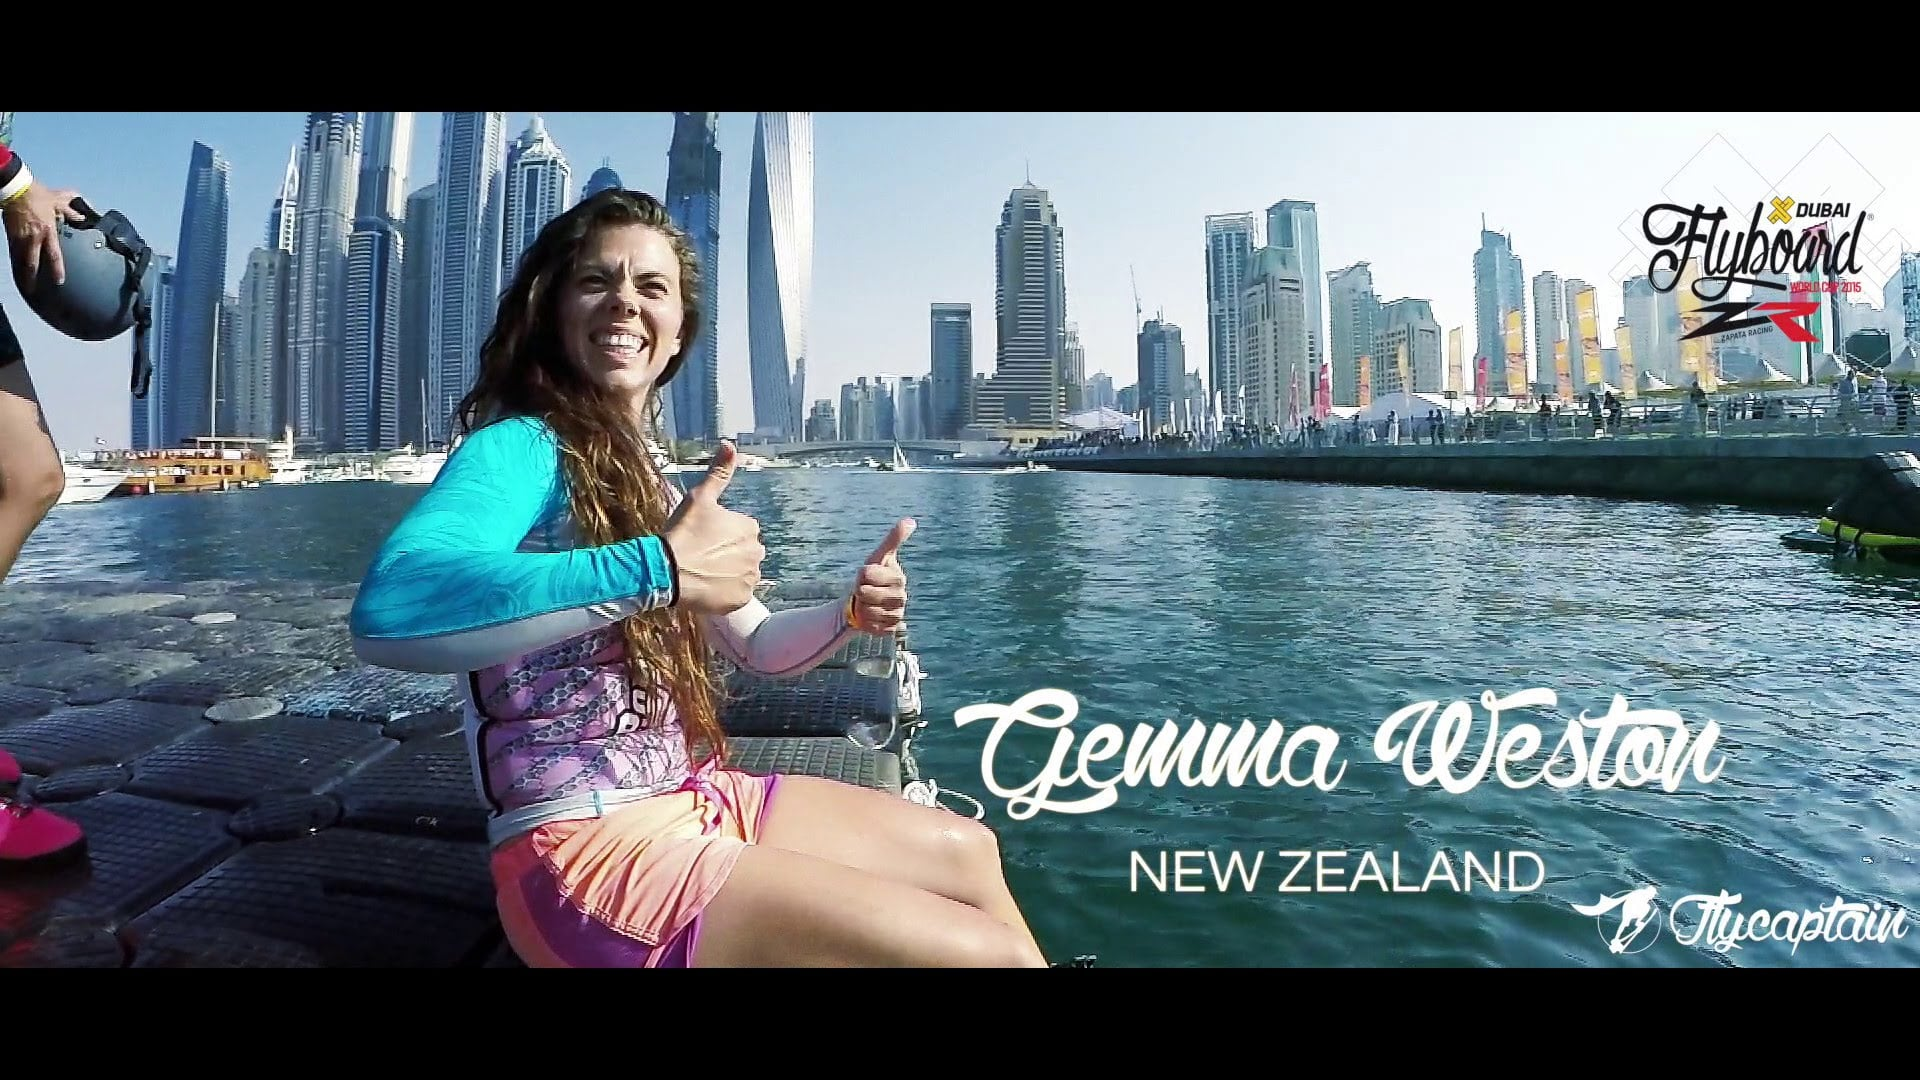 Wow! Check out the womens world flyboard champ in action!